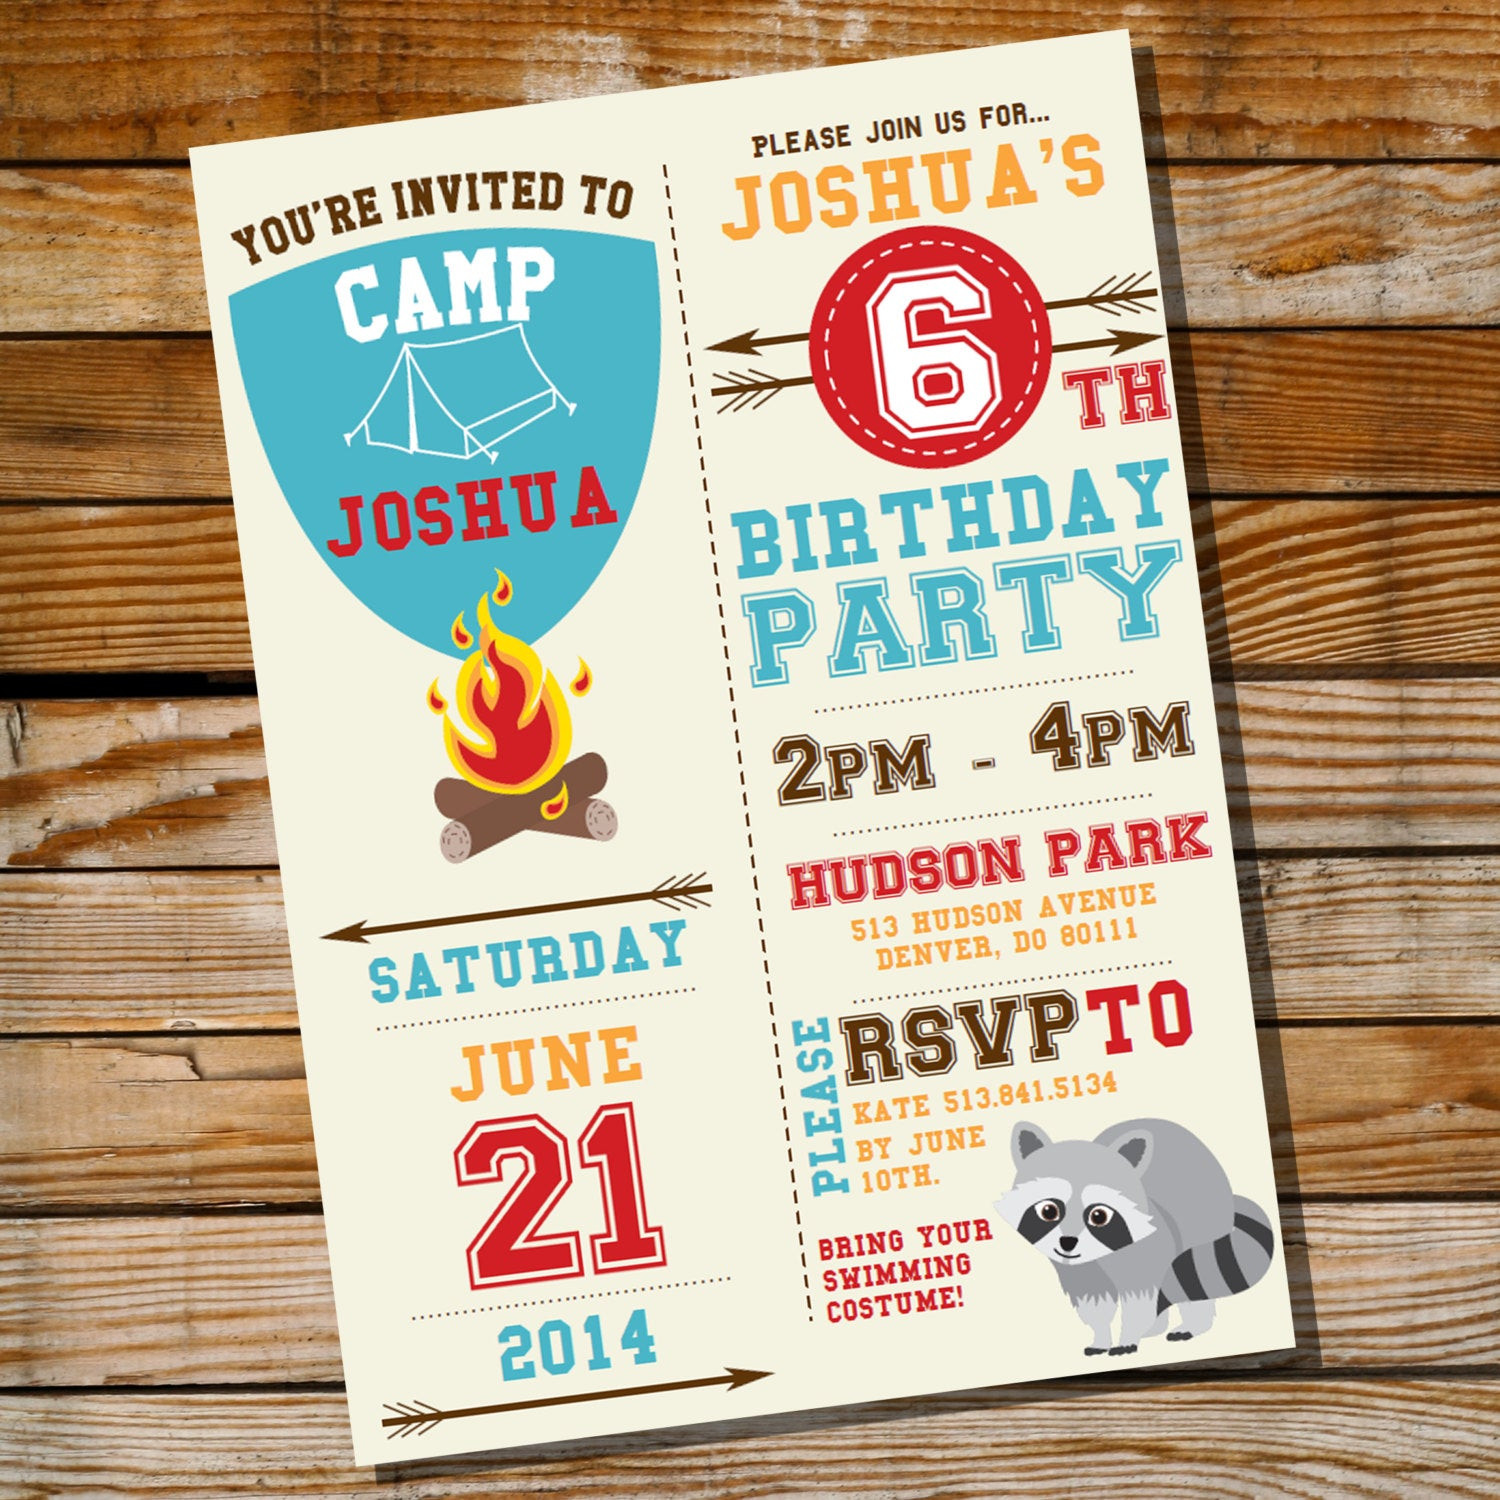 Best ideas about Camping Birthday Party Invitations . Save or Pin Camping Party Invitation for a Boy Birthday Party Instantly Now.